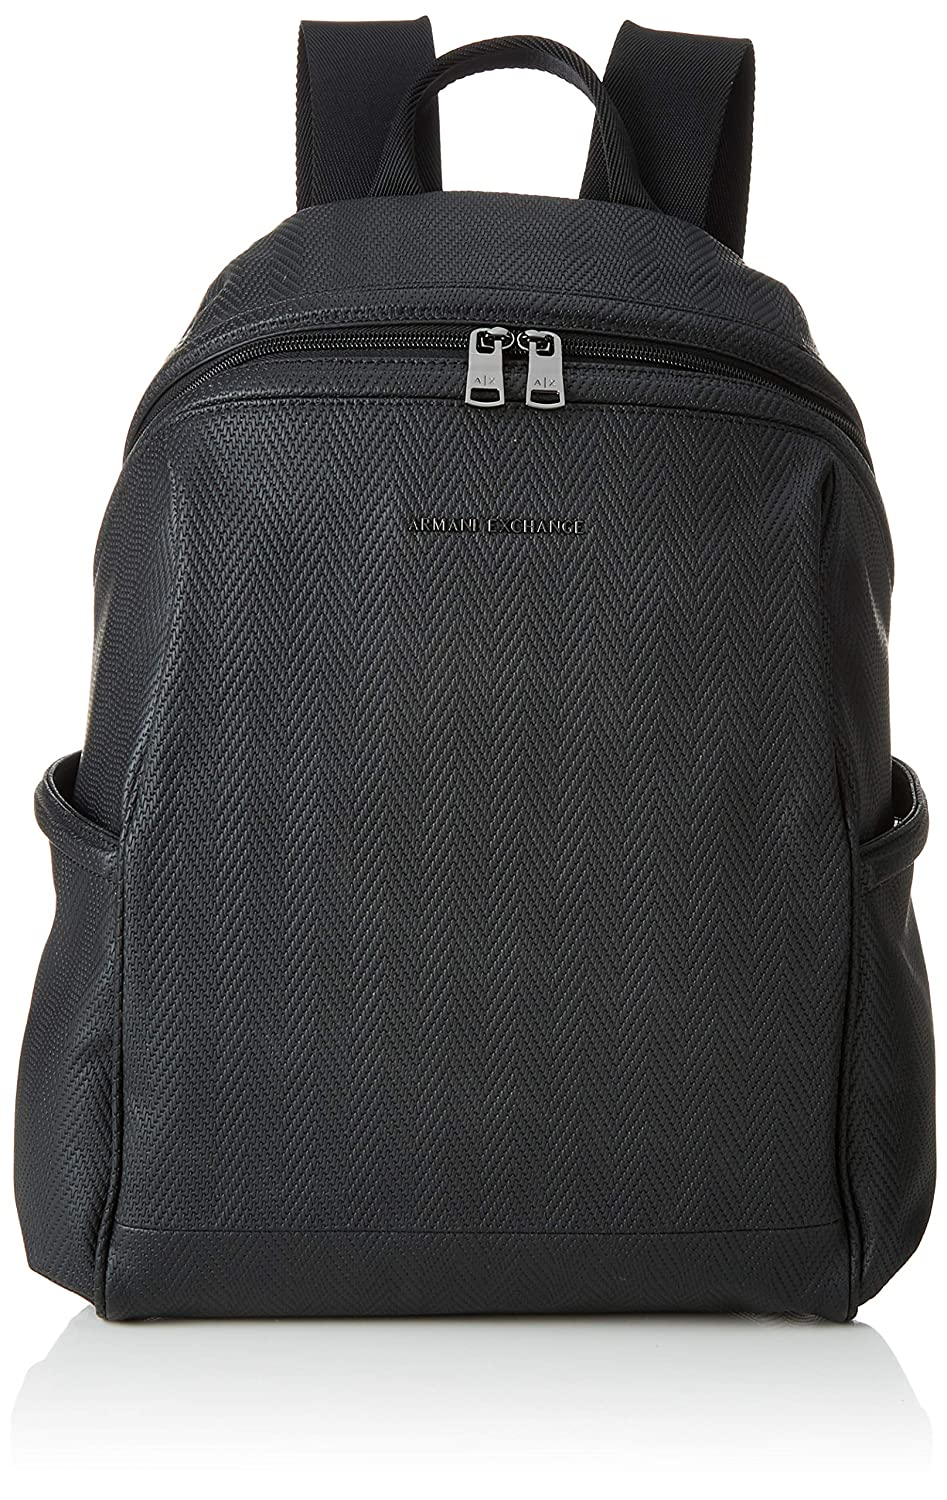 Image of Armani Exchange Men's Boxy Zippered Backpack Casual Daypacks